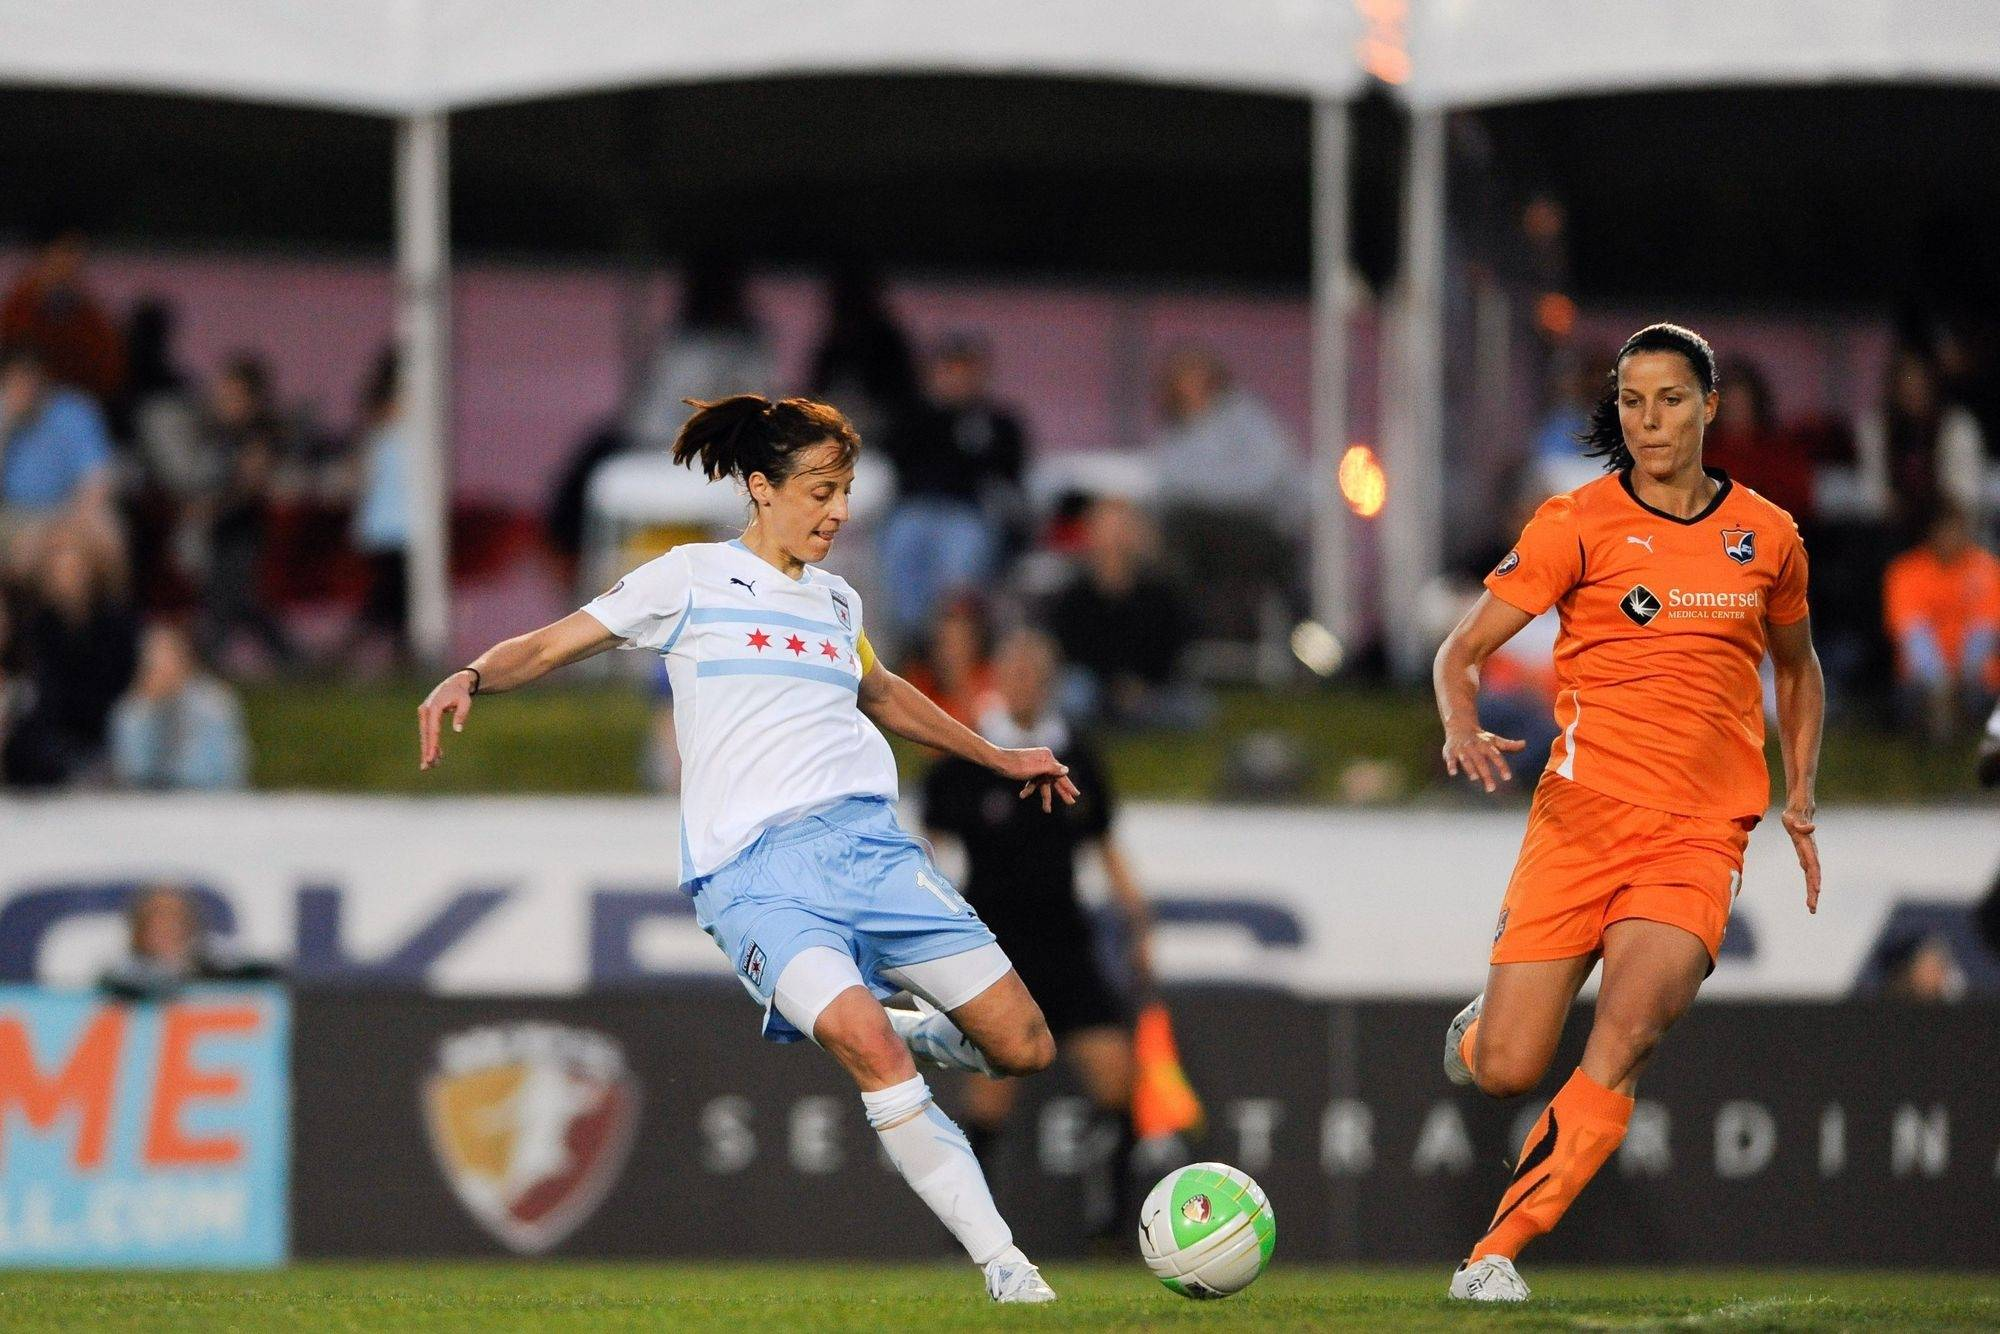 Kate Markgraf (15) of the Chicago Red Stars competes against Sky Blue FC at Yurcak Field in Piscataway, NJ in April.